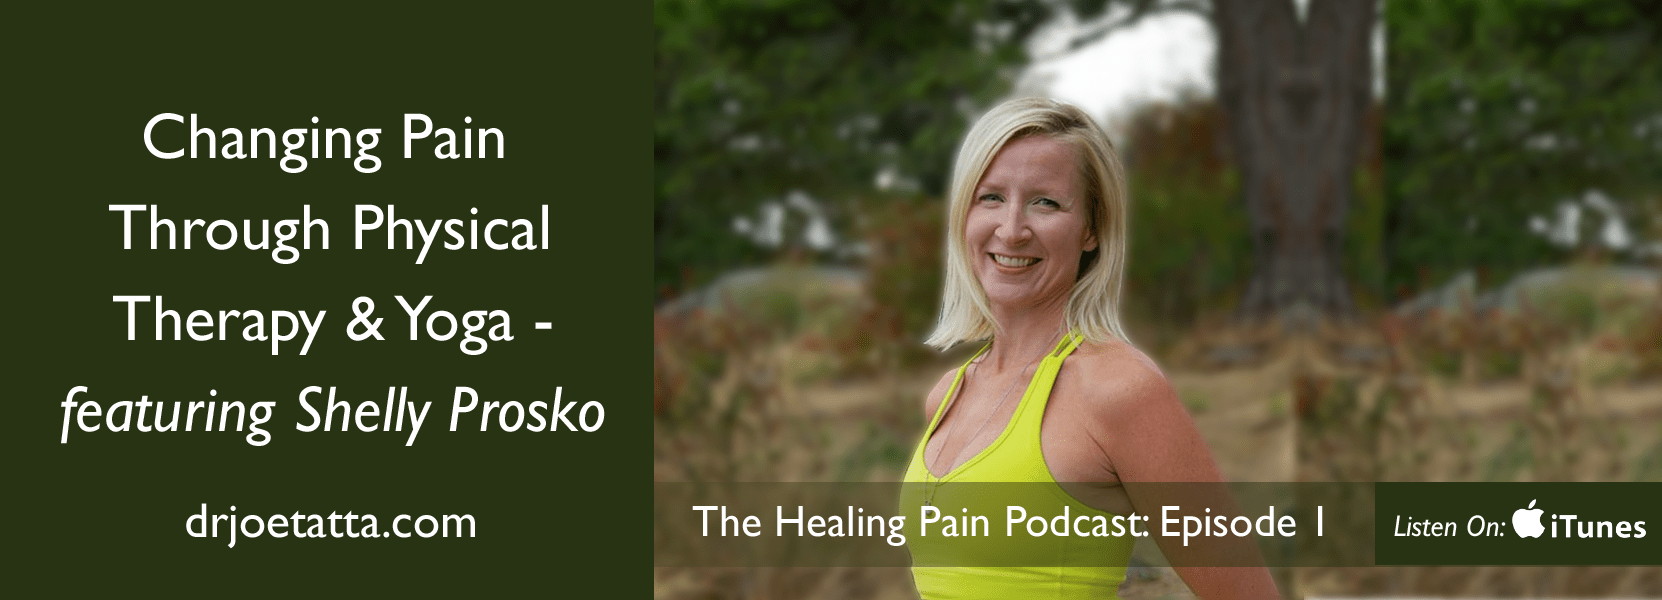 Shelly-Prosko-Changing-Pain-Through-Physical-Therapy-and-Yoga